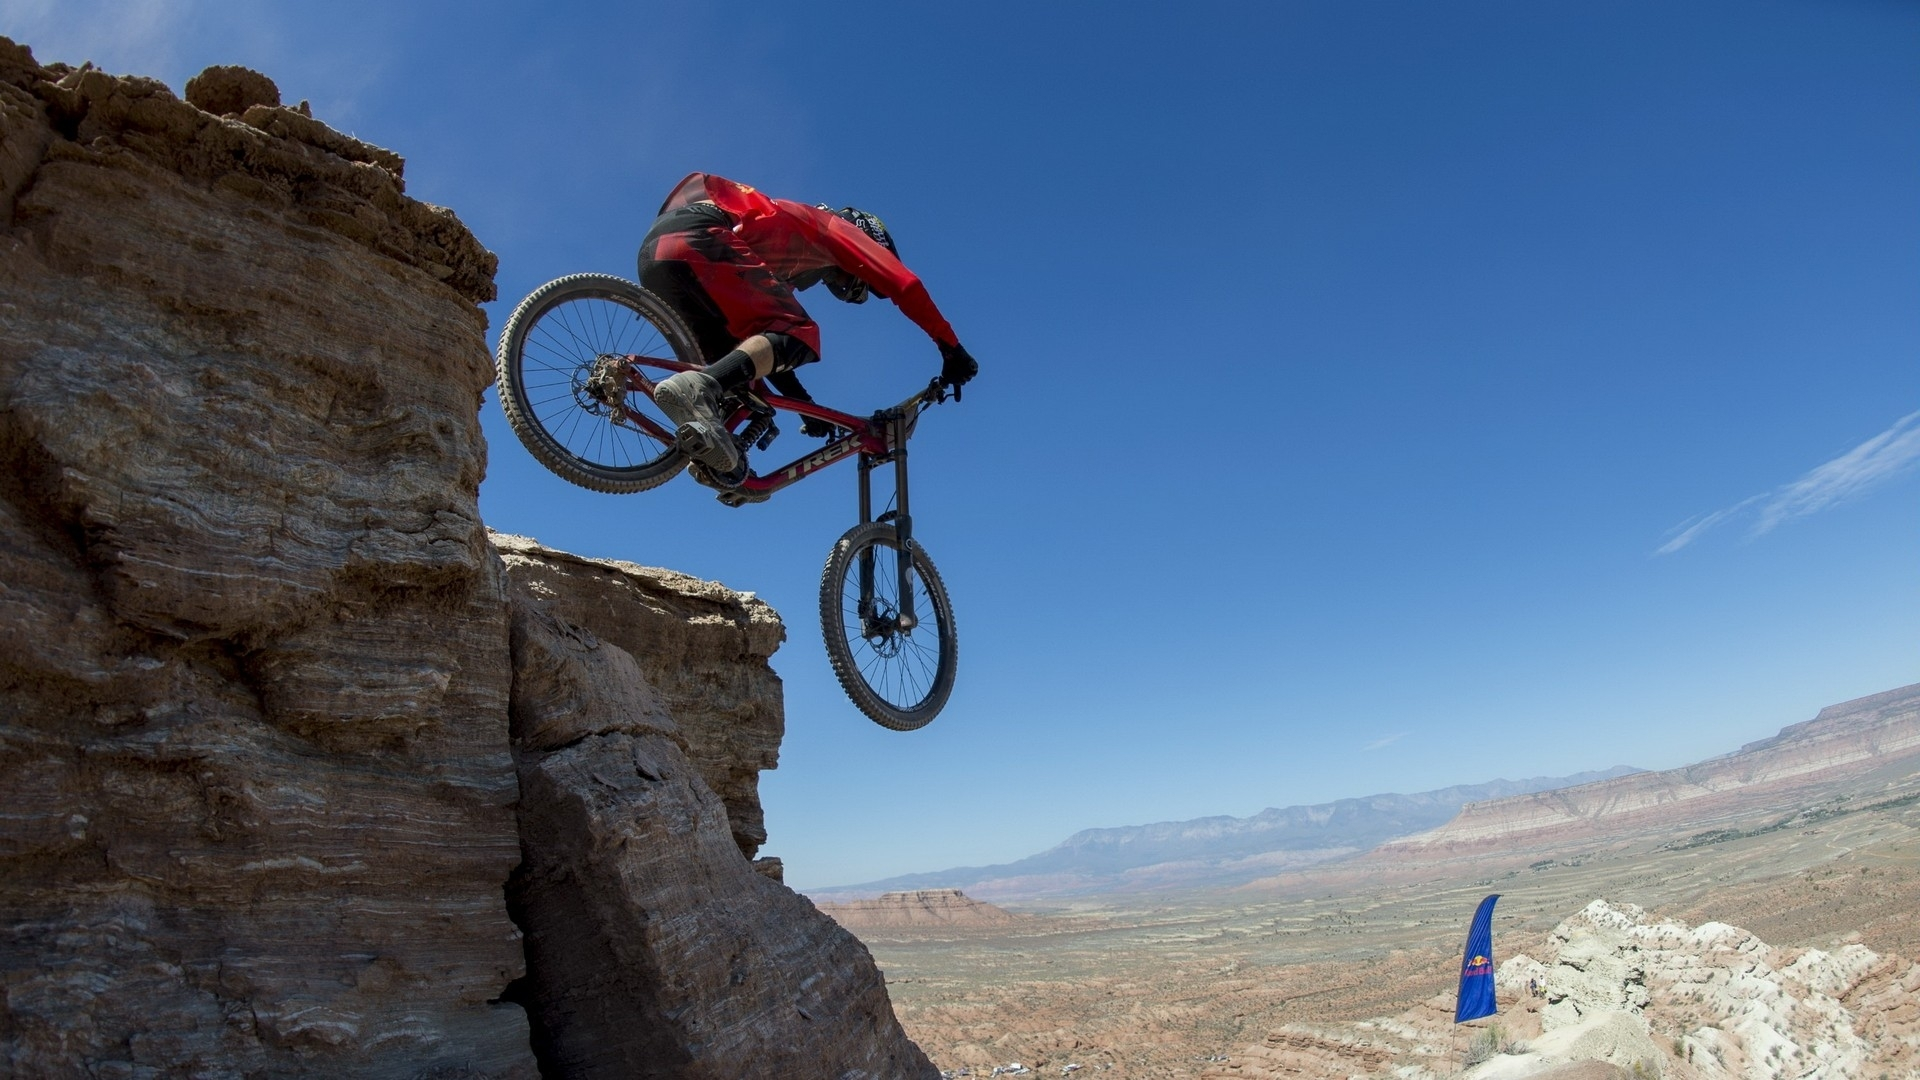 Sport Wallpaper Landscape: Bicycles Sports Extreme Red Bull Rampage Mountain Cliff